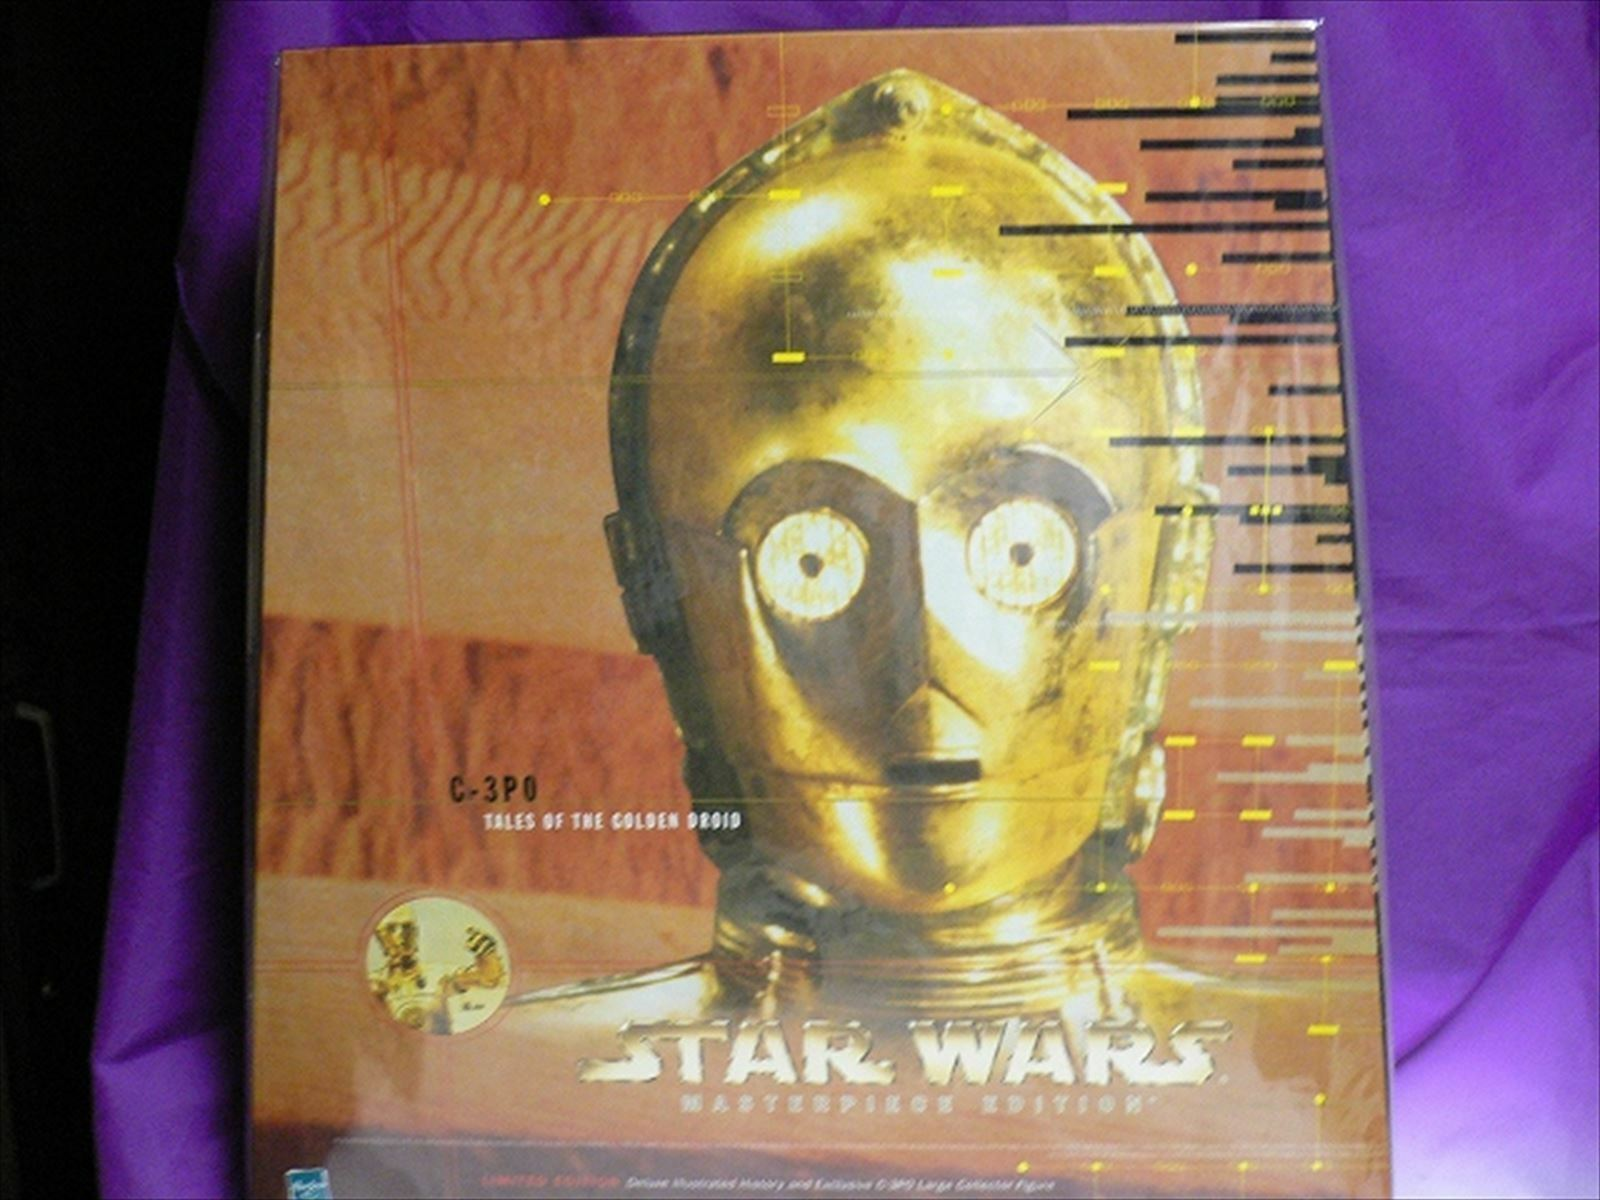 Star Wars Masterpiece Edition C-3PO 12 in (environ 30.48 cm) figure from Japan F S